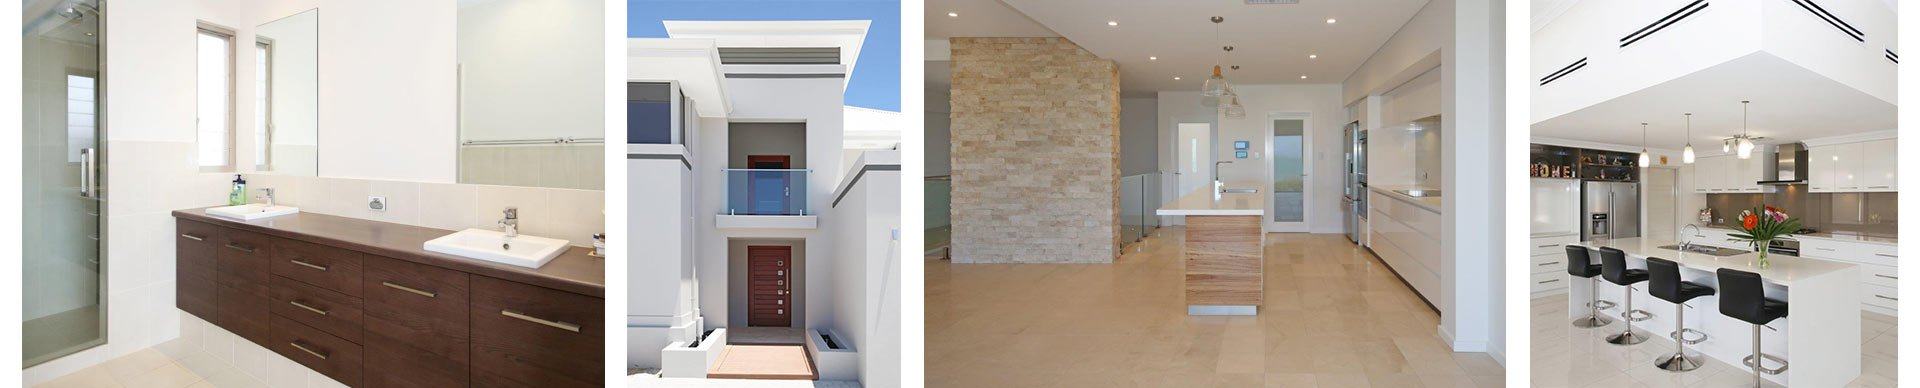 New Home Designs we've created in Geraldton WA